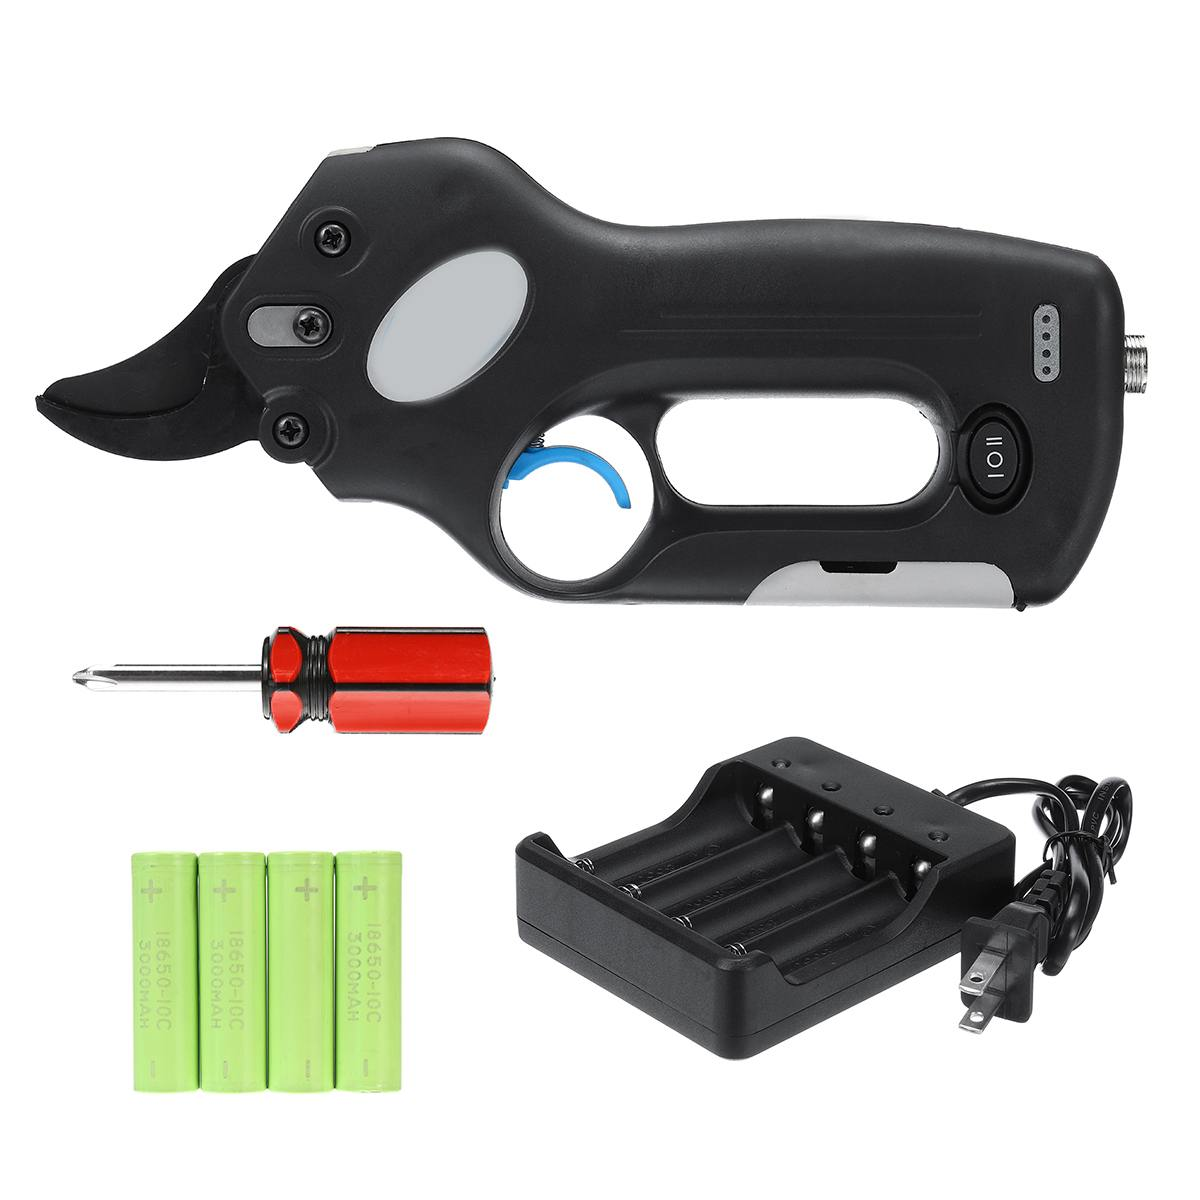 12V Wireless Electric Rechargeable Garden Scissors for Pruning Branches and stems with 4 Li-ion Battery 11